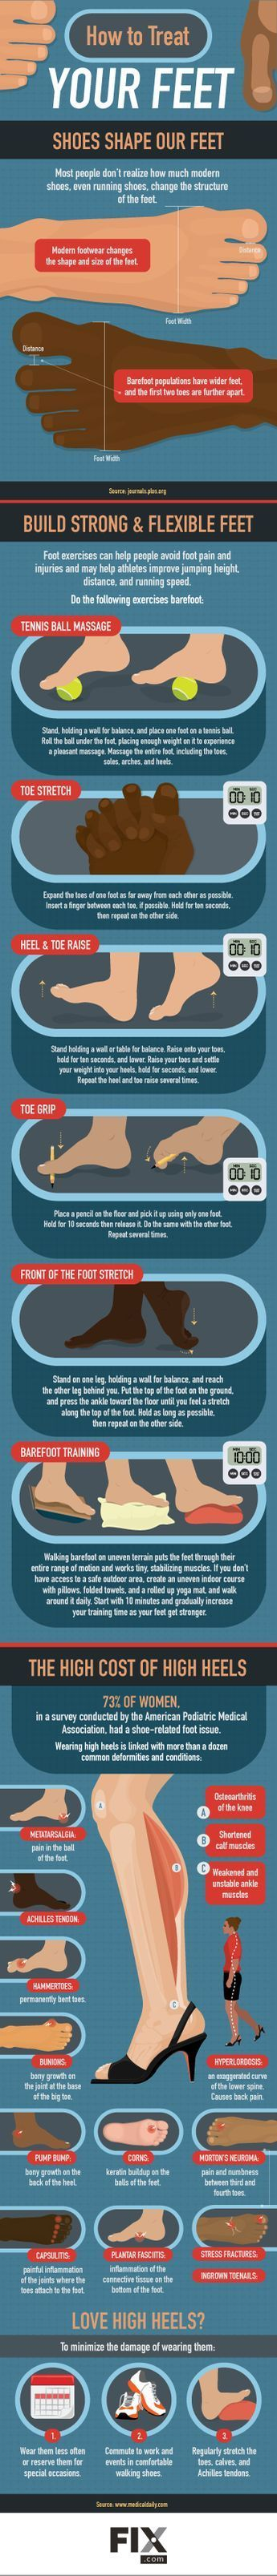 Avoid Foot Pain With Proper Footwear | http://Fix.com